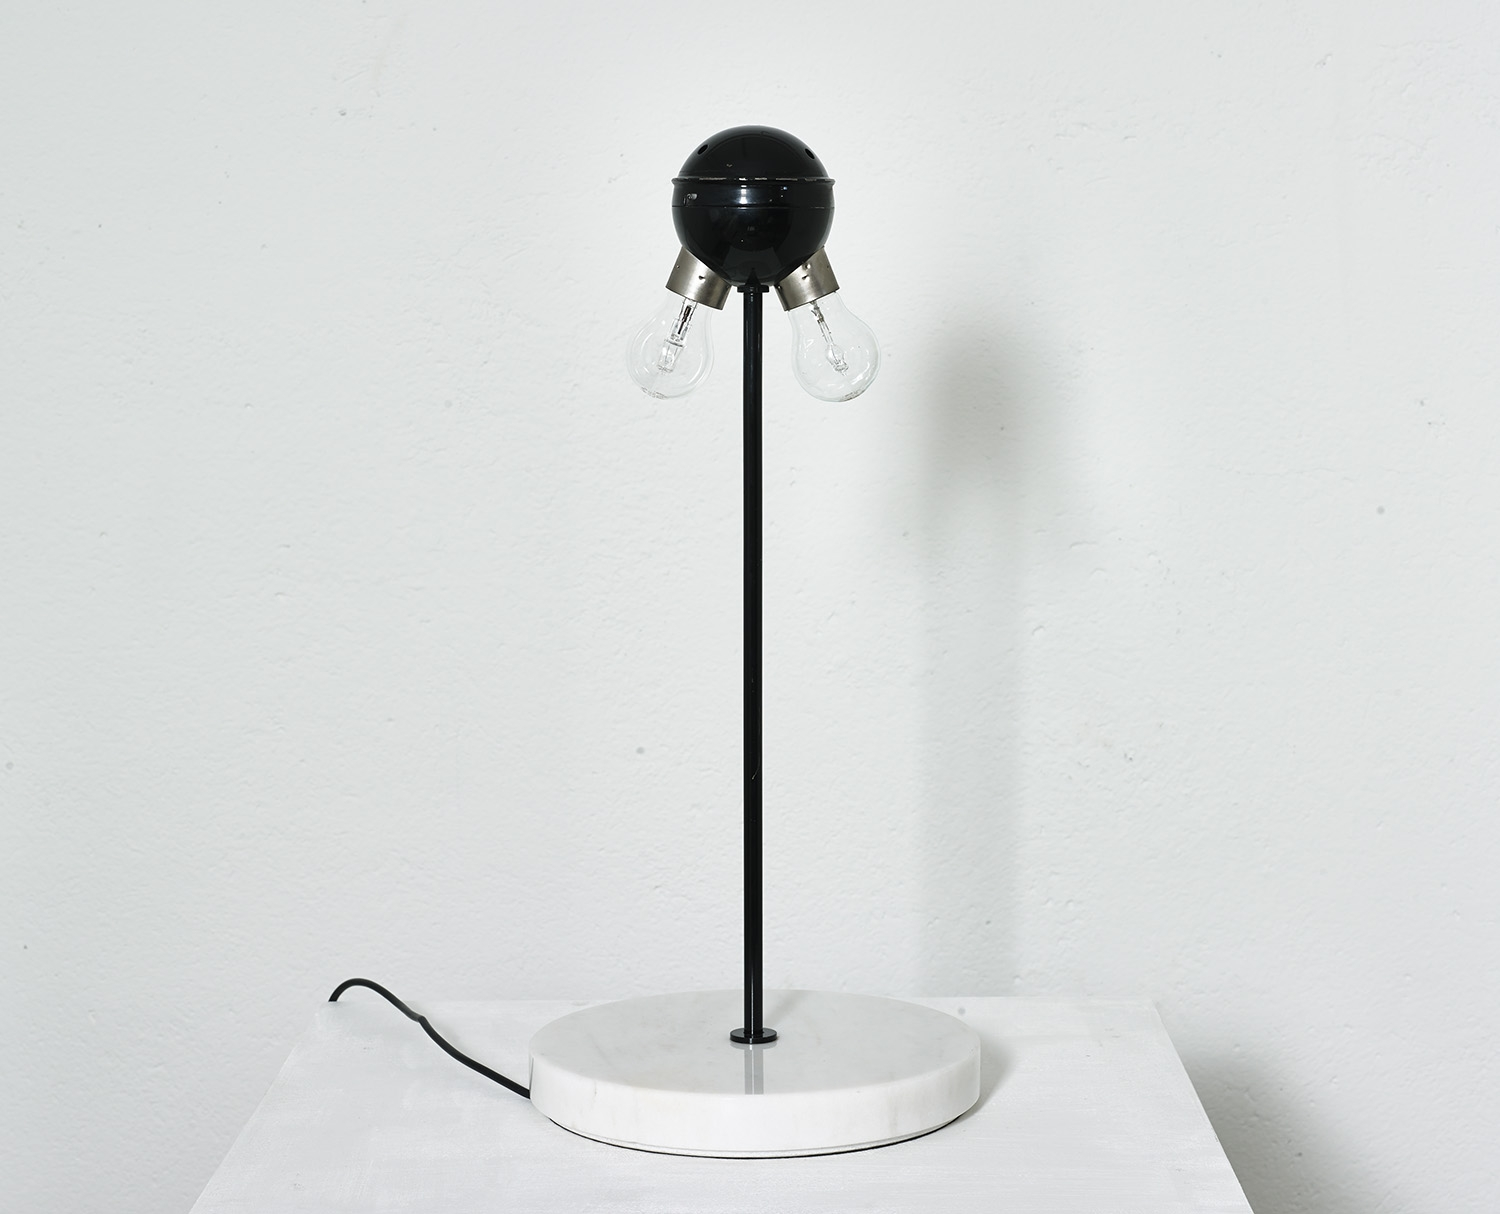 table-lamp-snow-by-vico-magistretti-1973-image-02